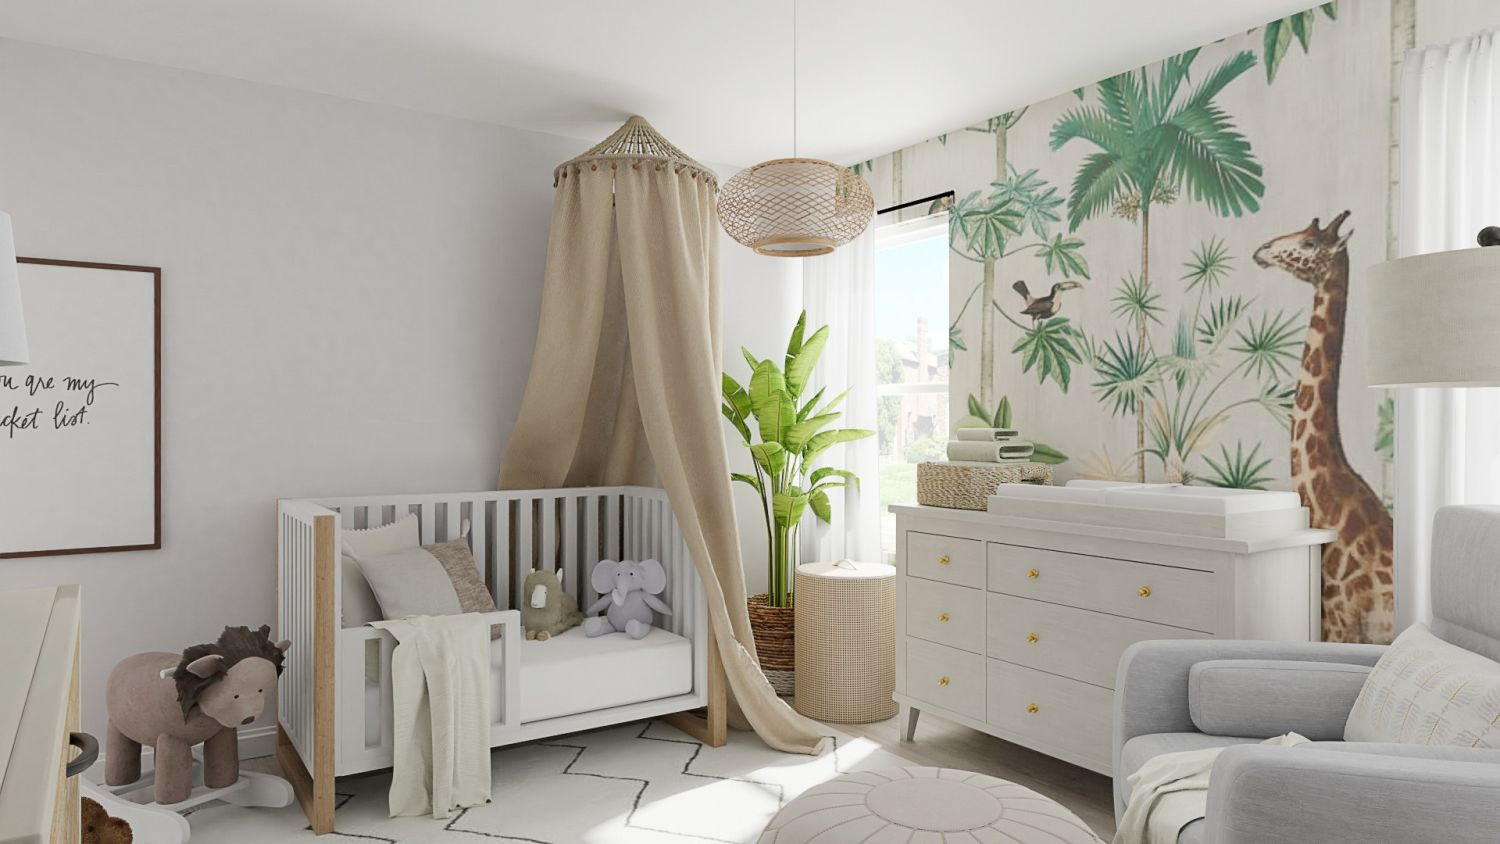 5 Bohemian Boho Themed Baby Boy Nursery Room Decor Ideas Spacejoy